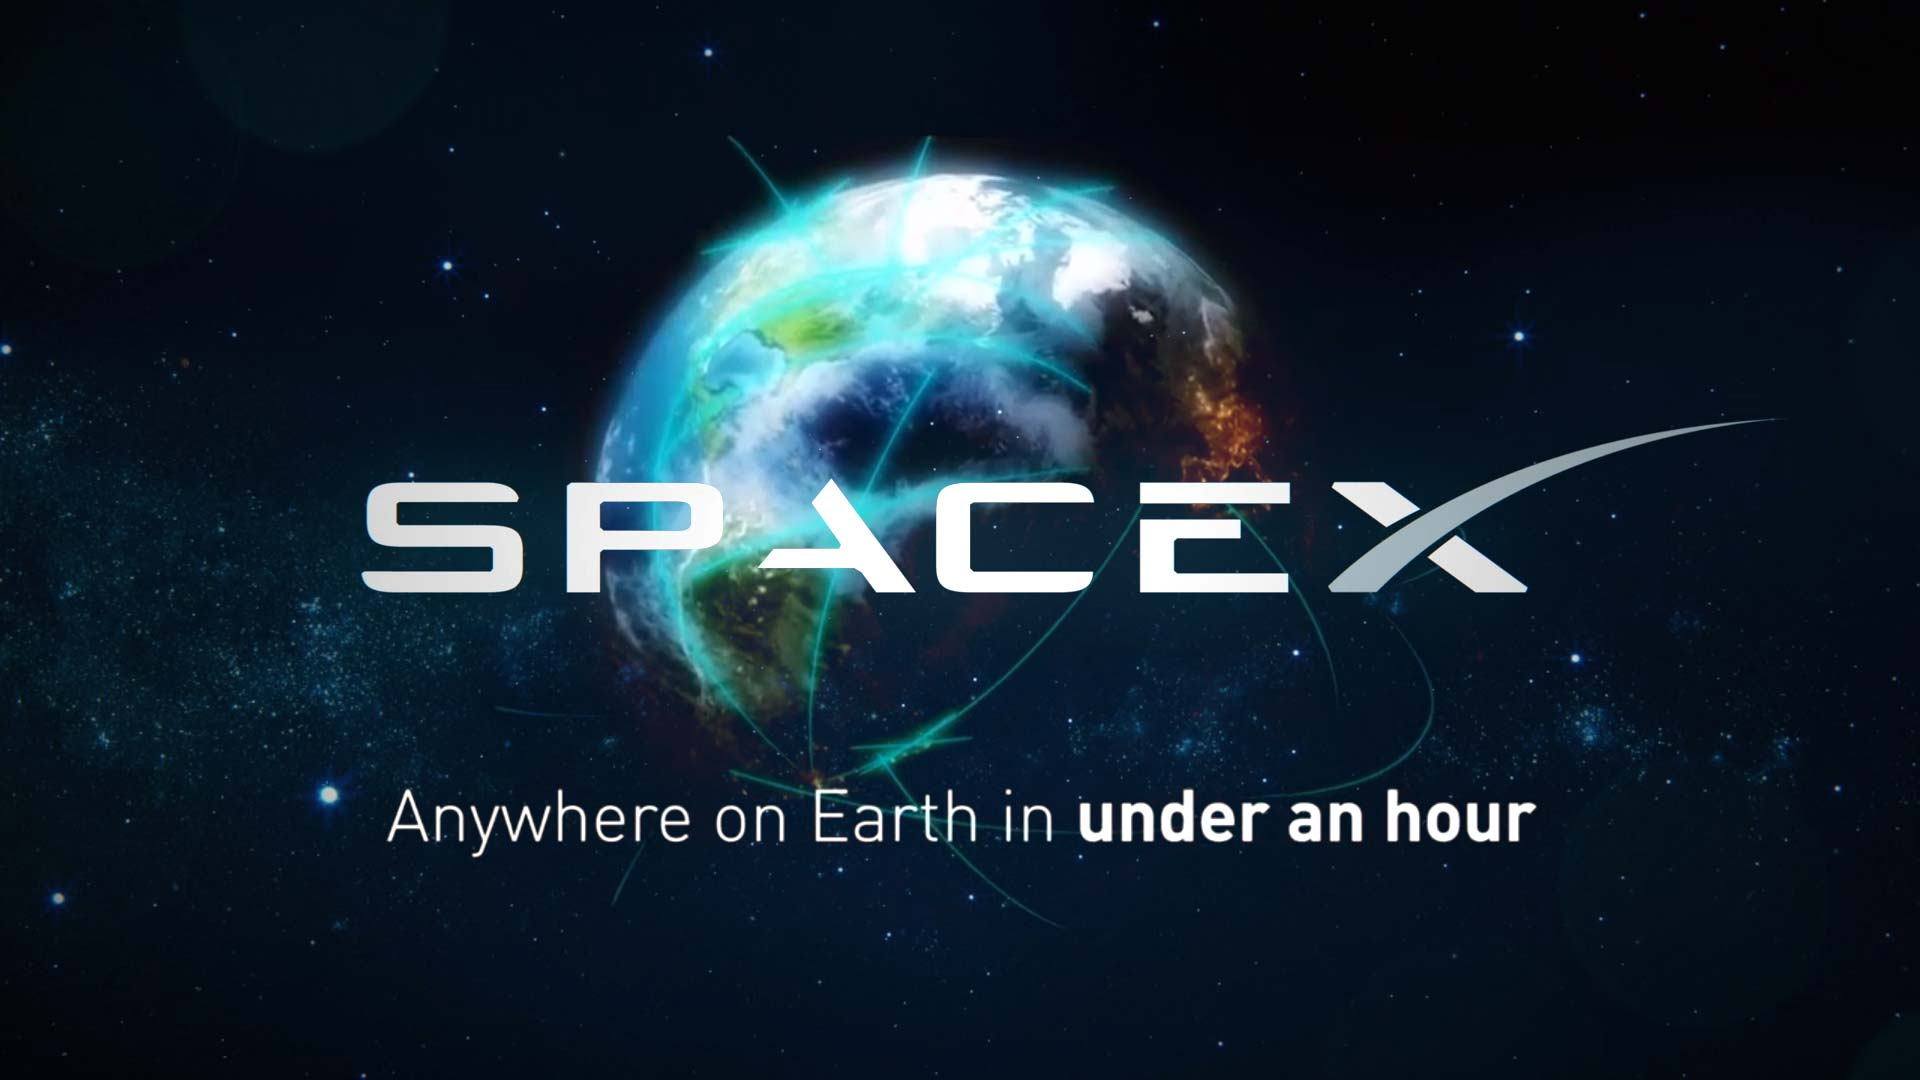 SpaceX plans to fly you anywhere on Earth in under an hour using Starship